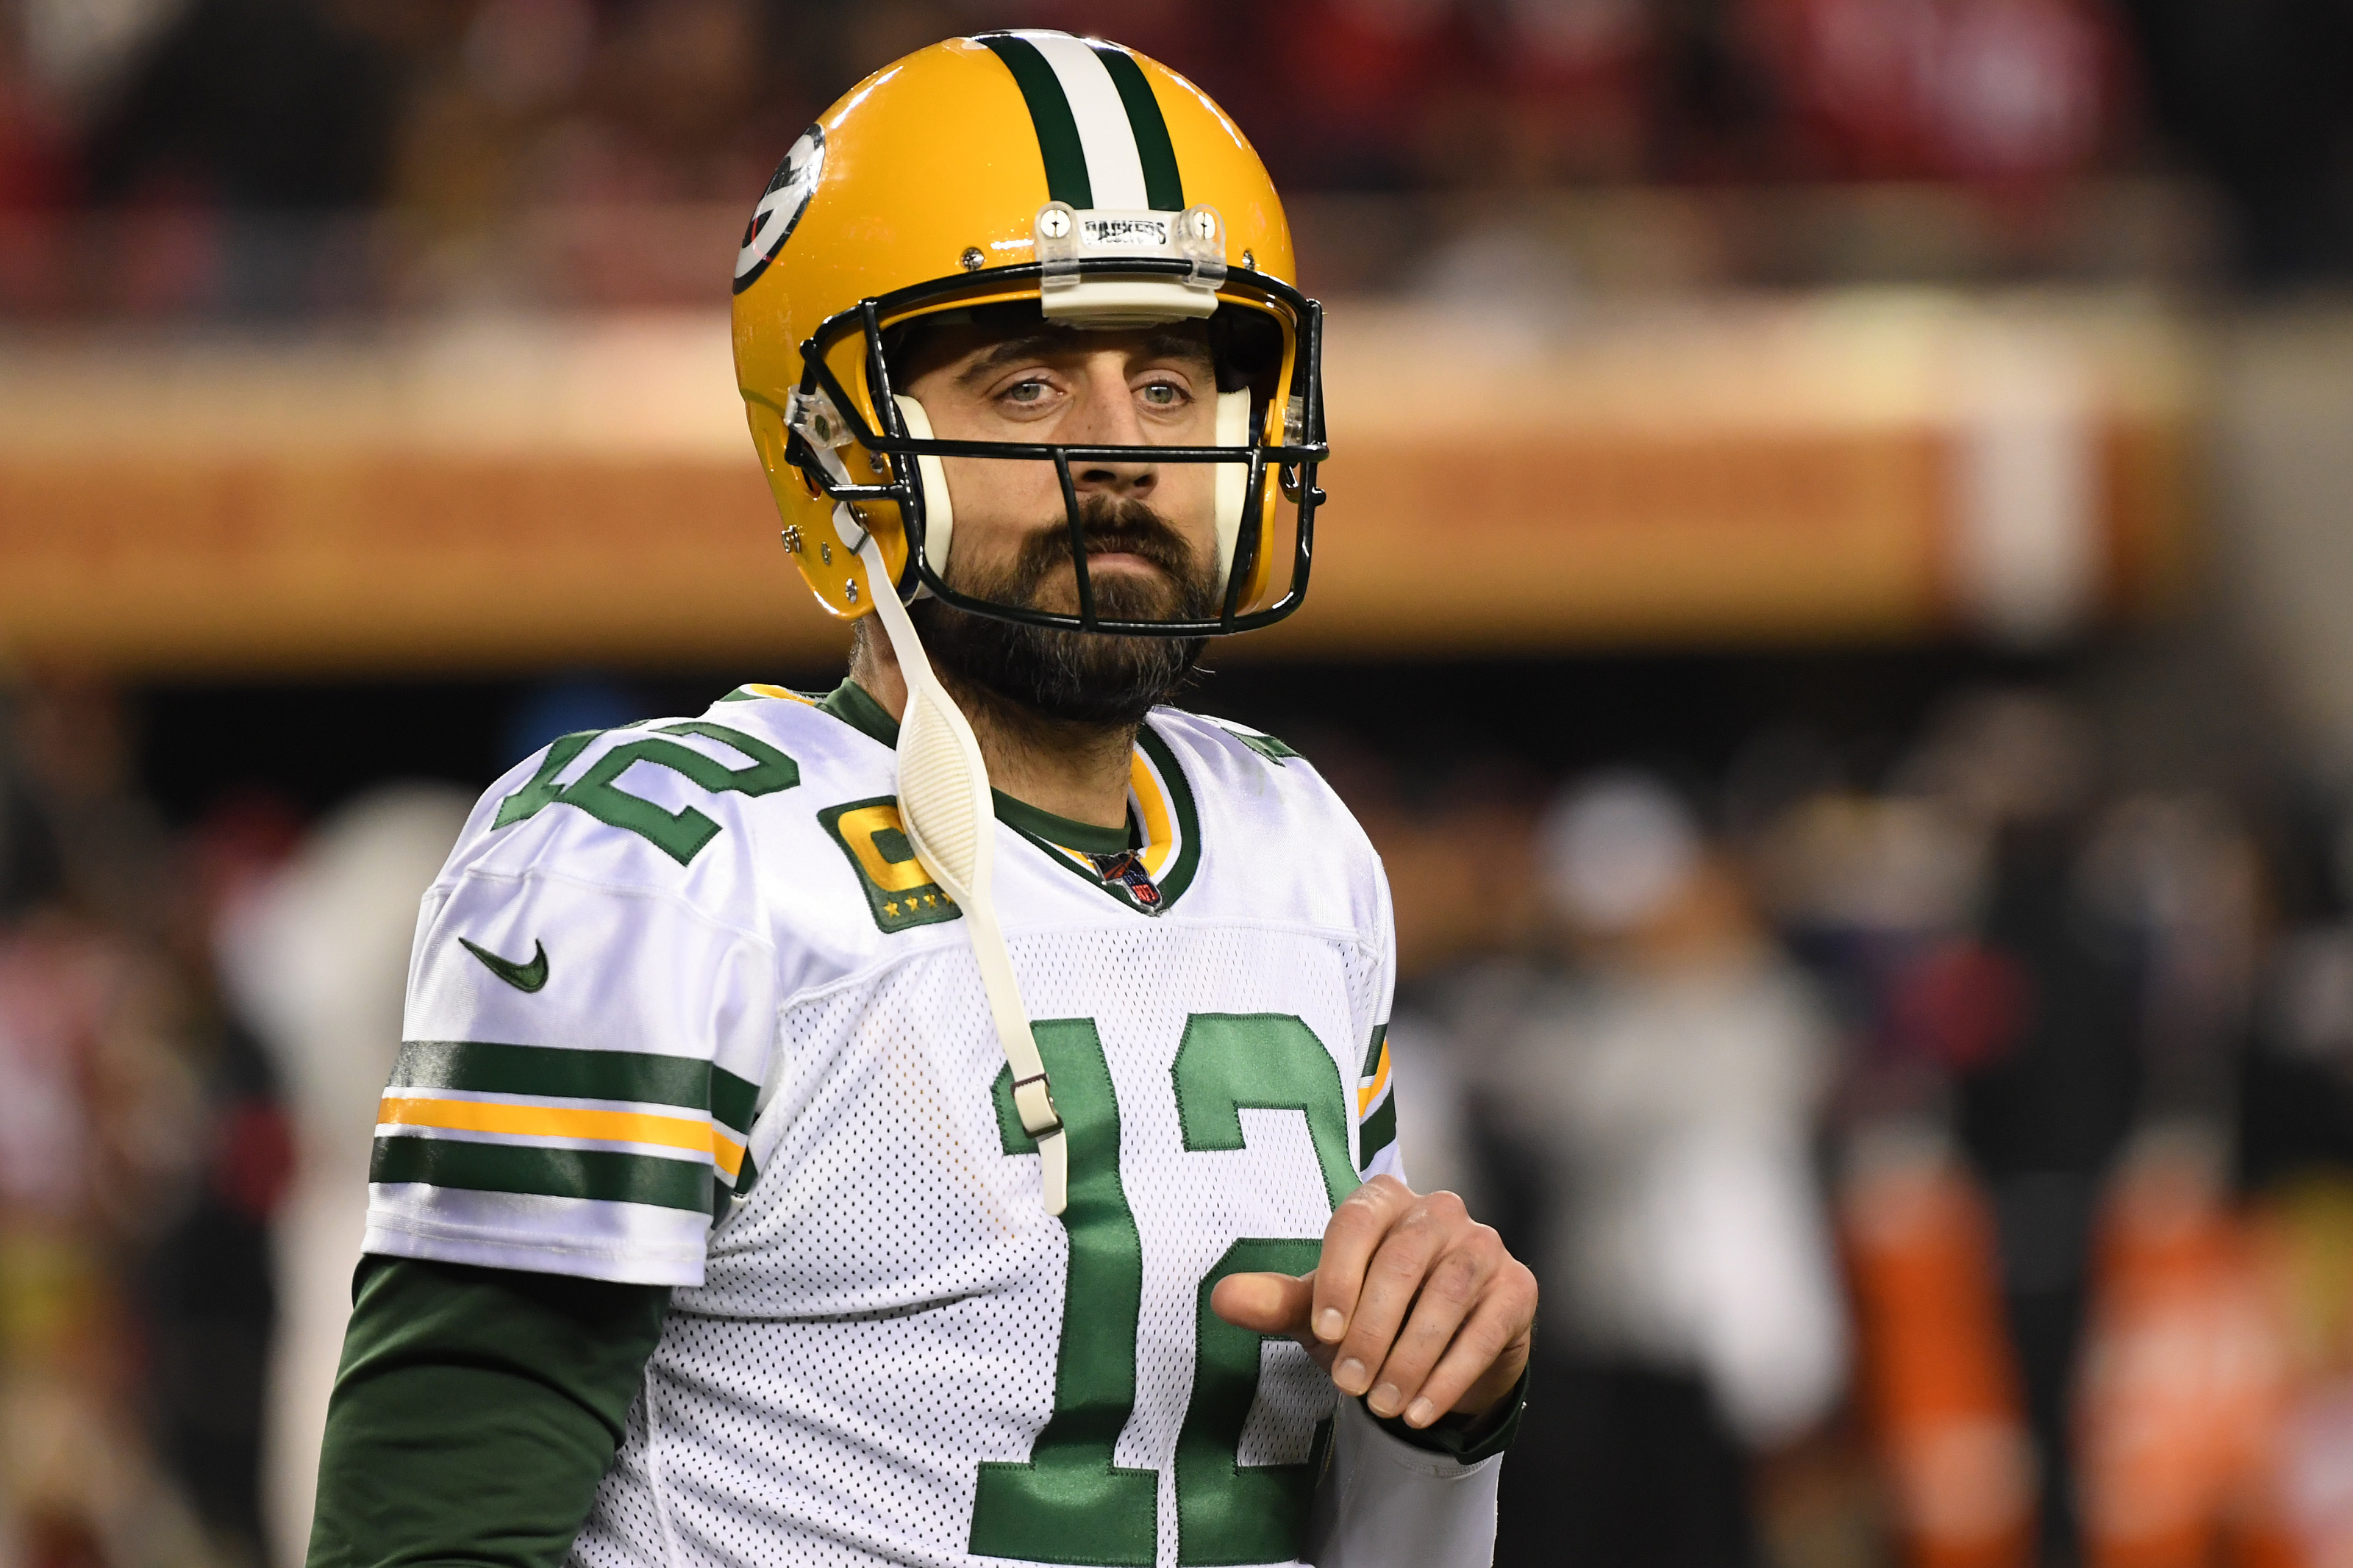 Green Bay Packers must take risks to improve offense in 2020